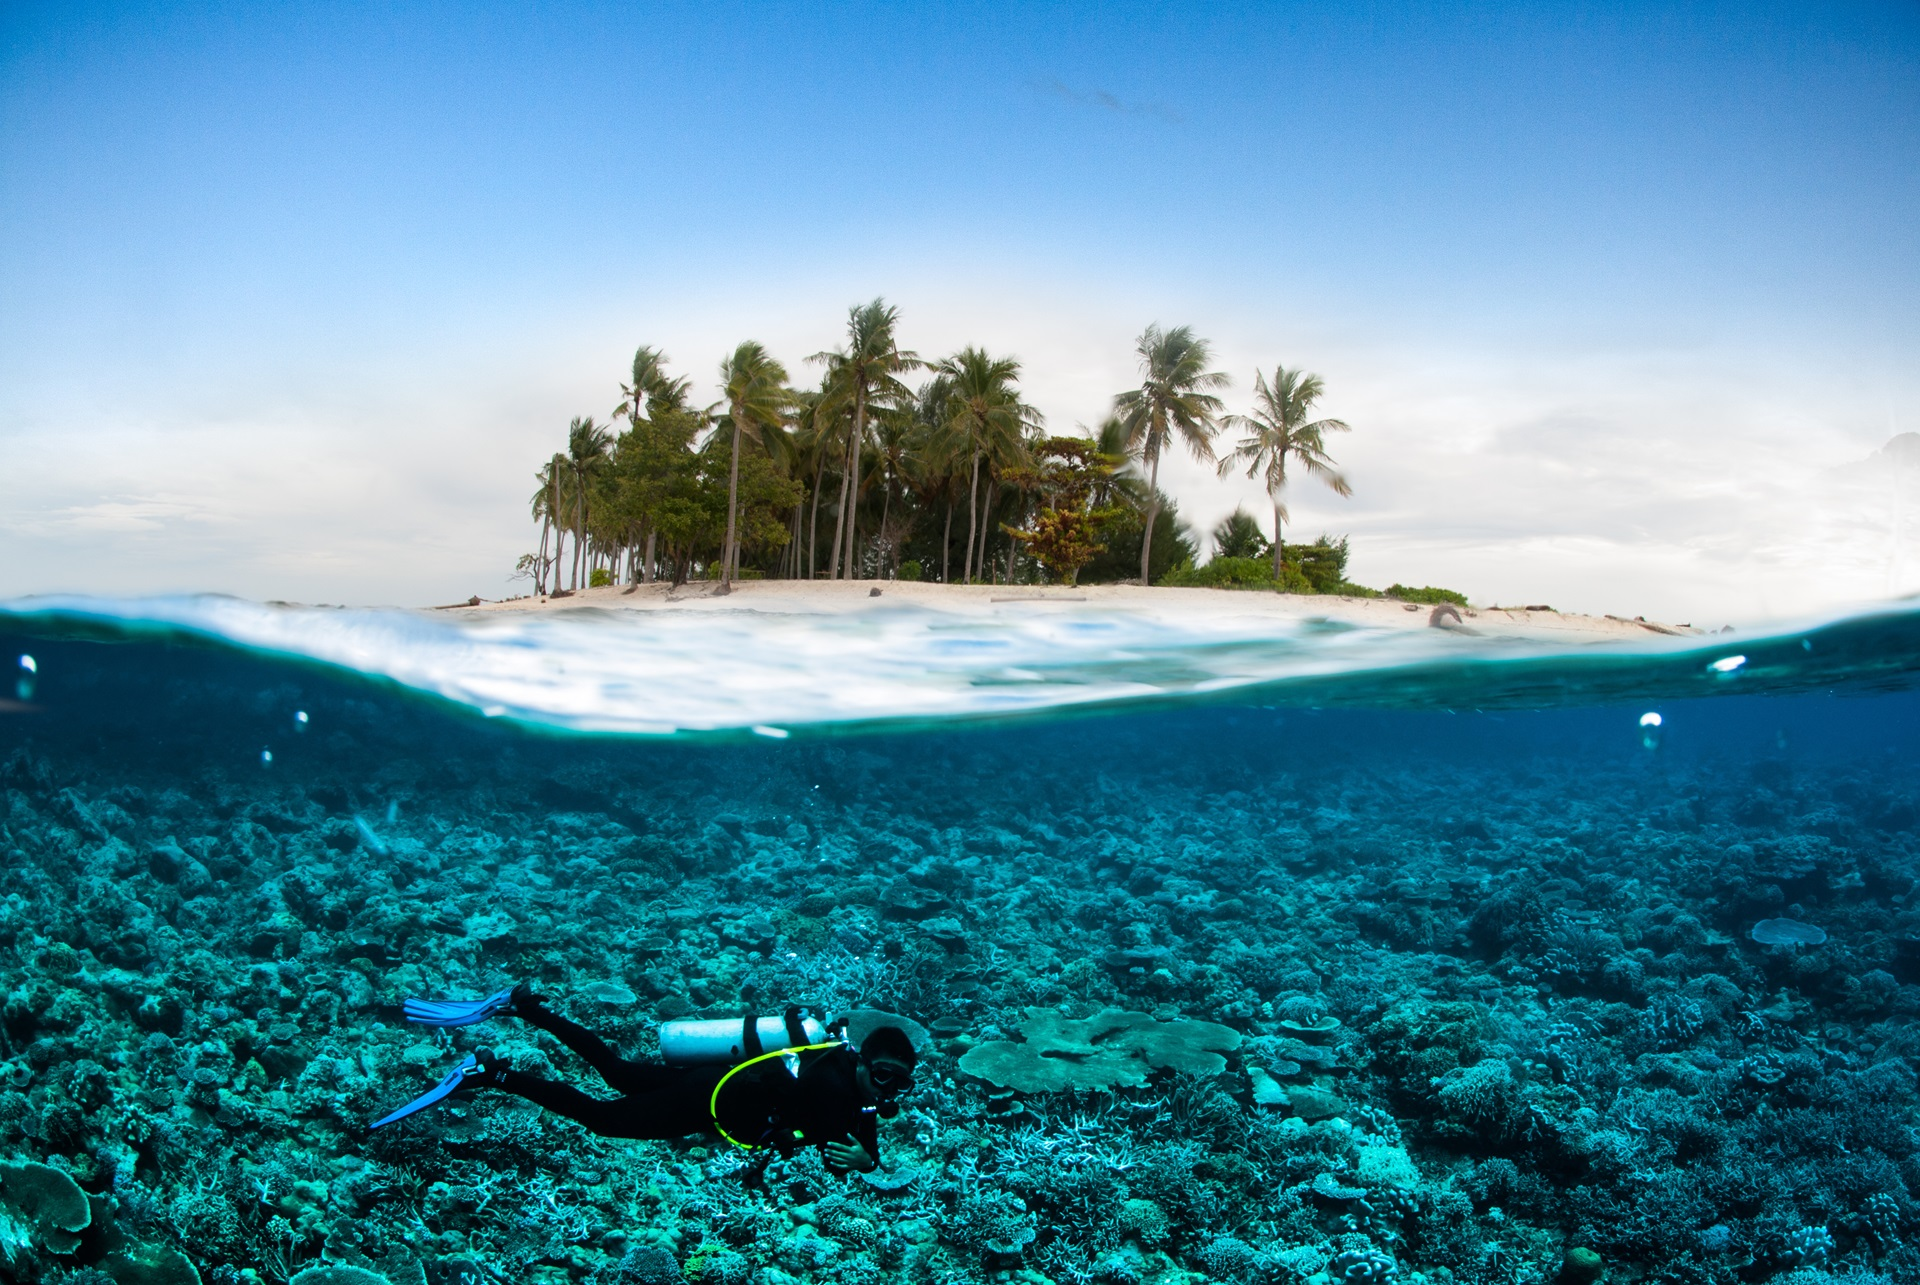 scuba diving diver below coconut island bali lombok sulawesi